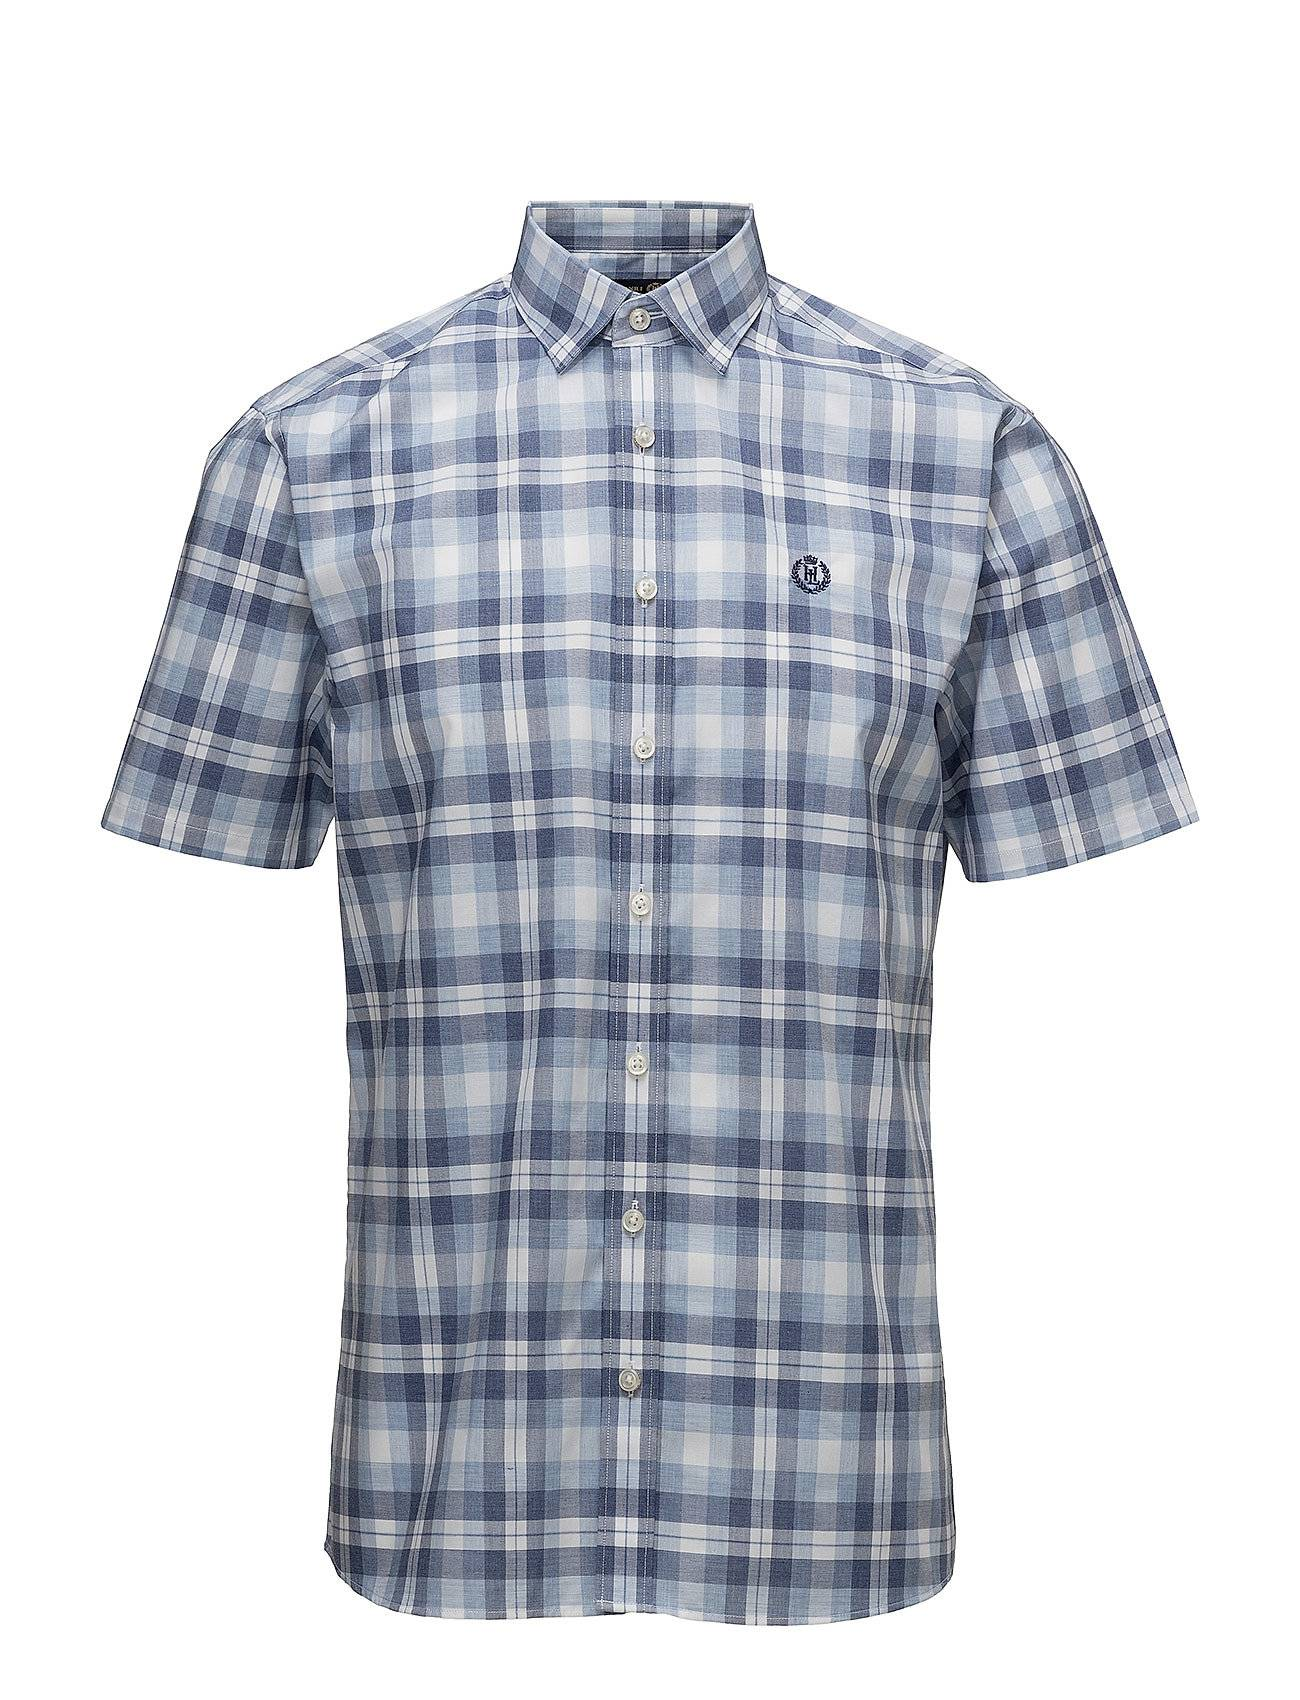 Henri Lloyd Beaumont Regular Shirt Ss